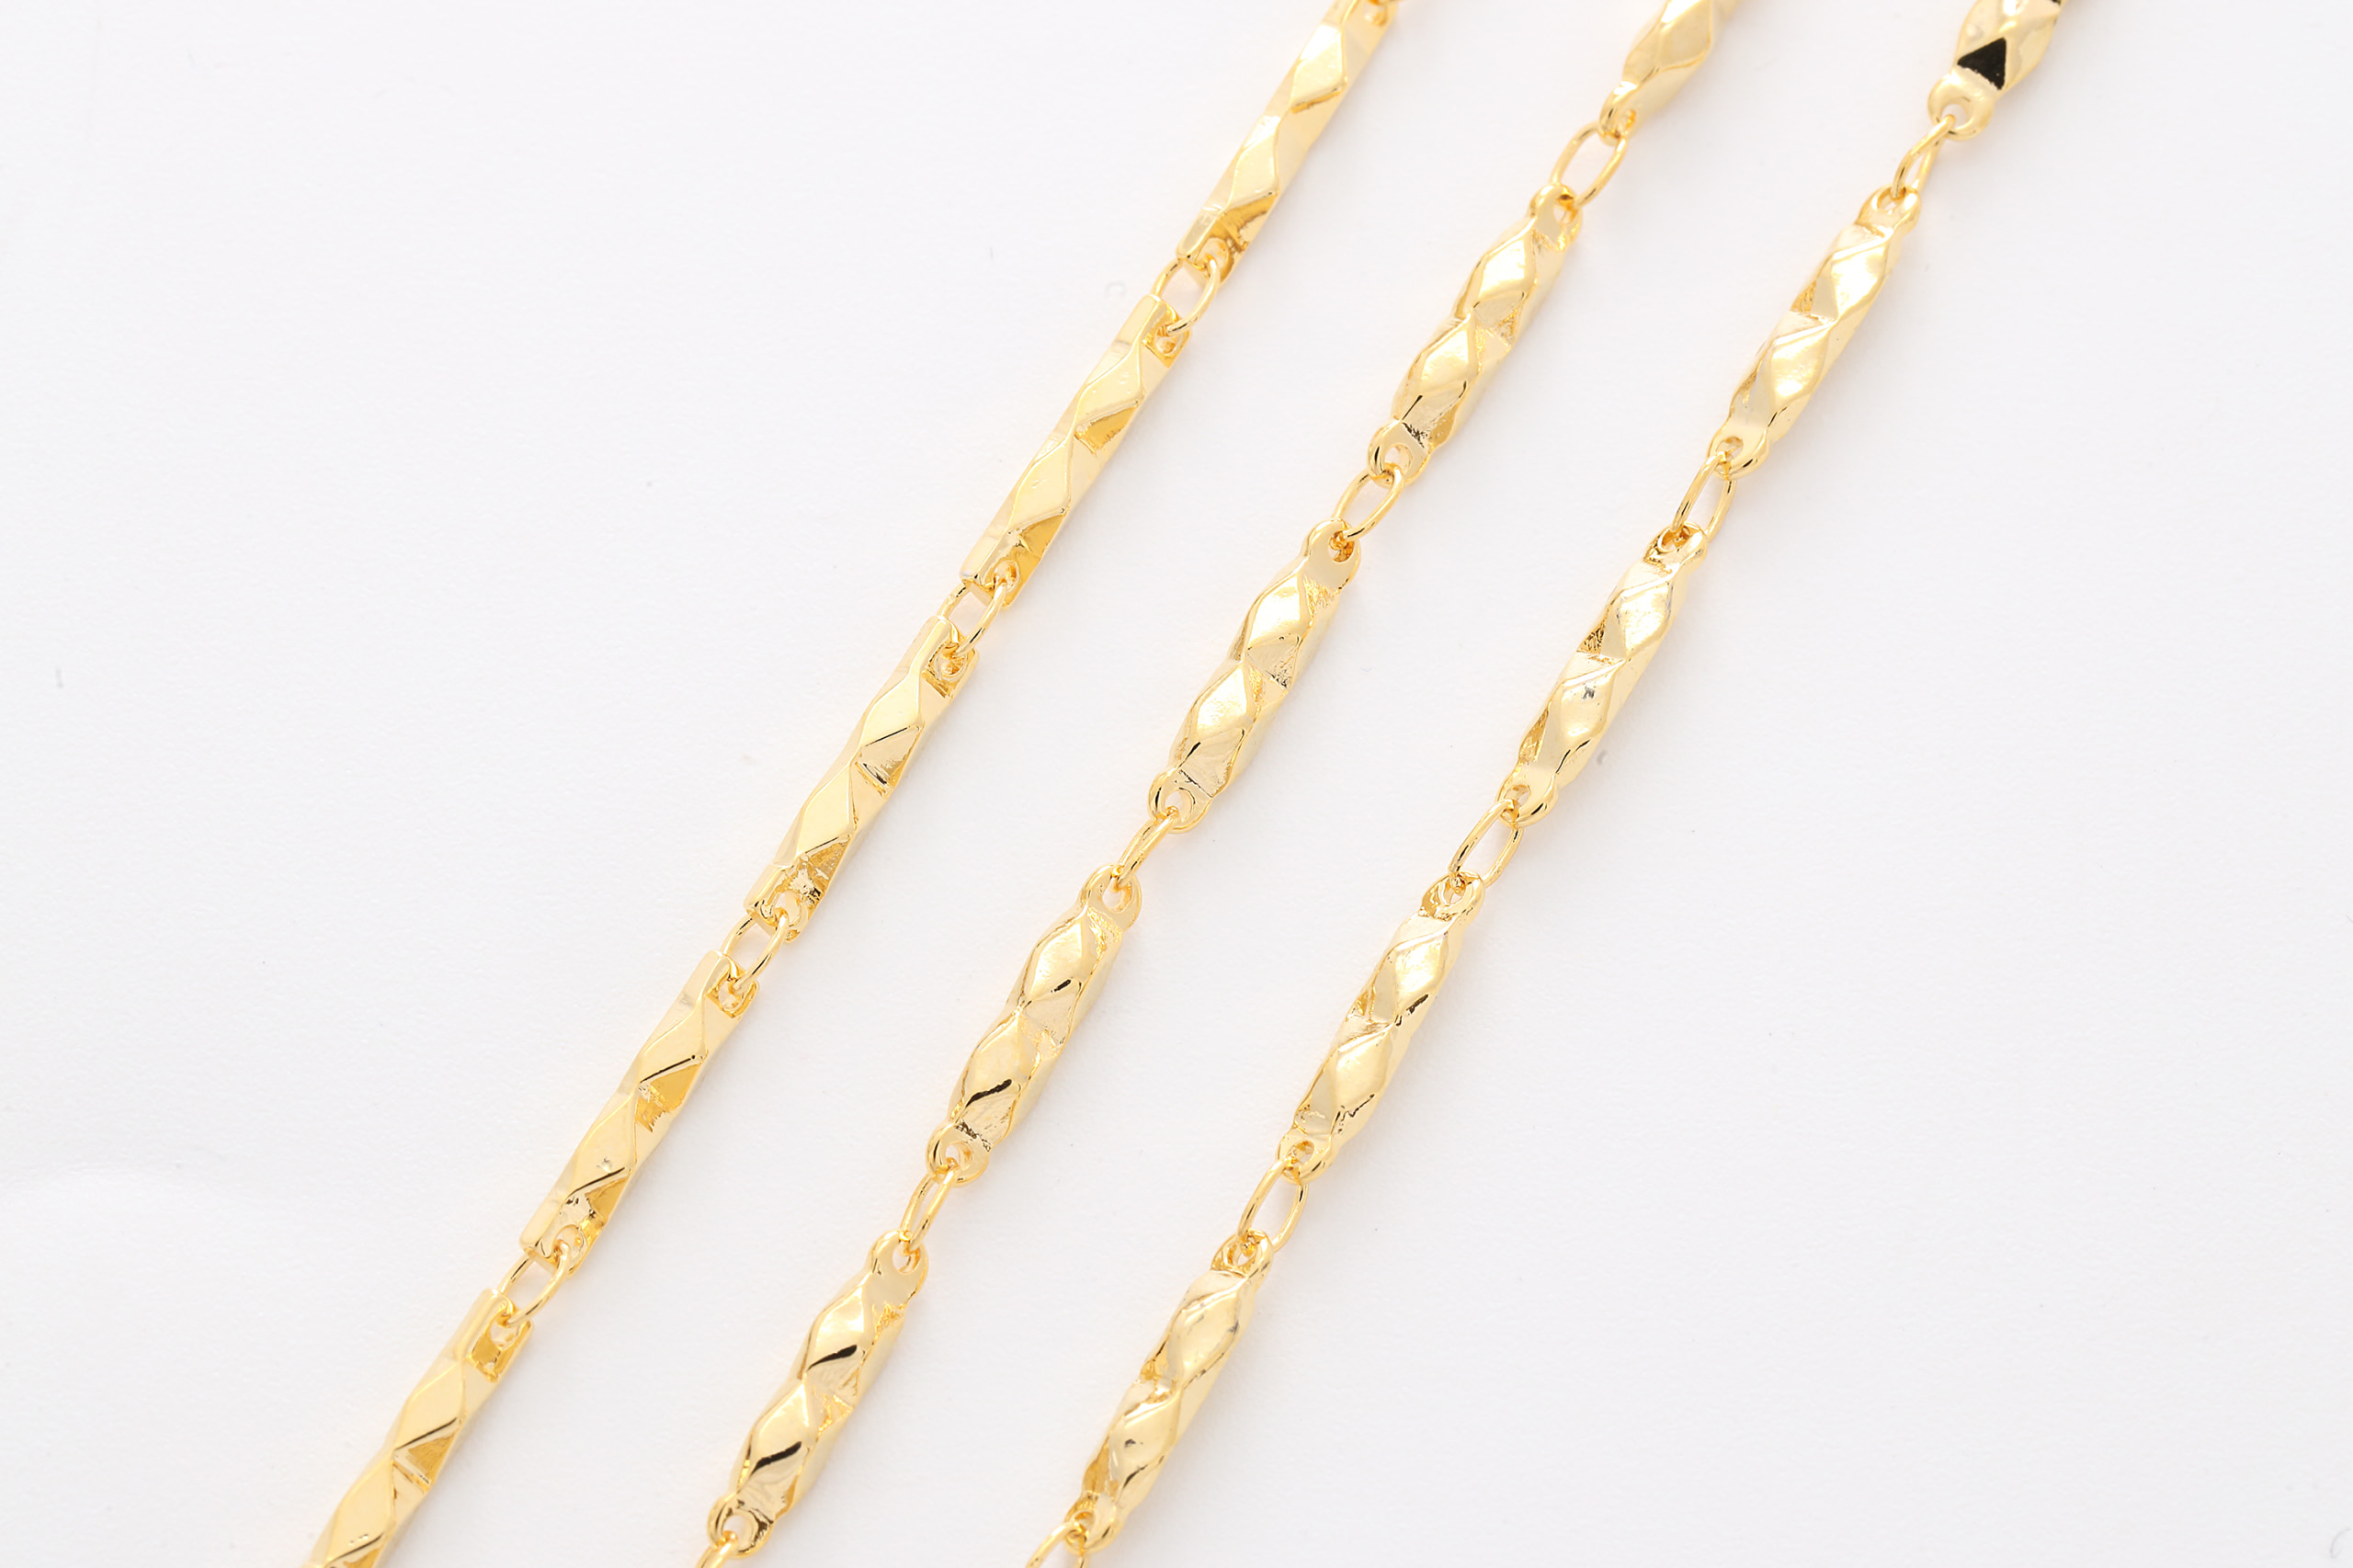 [CJ05-12] LAST STOCK, Unique linked chain, Brass, Nickel free, Unique chain, Handmade chain, Jewelry making supplies, 1m